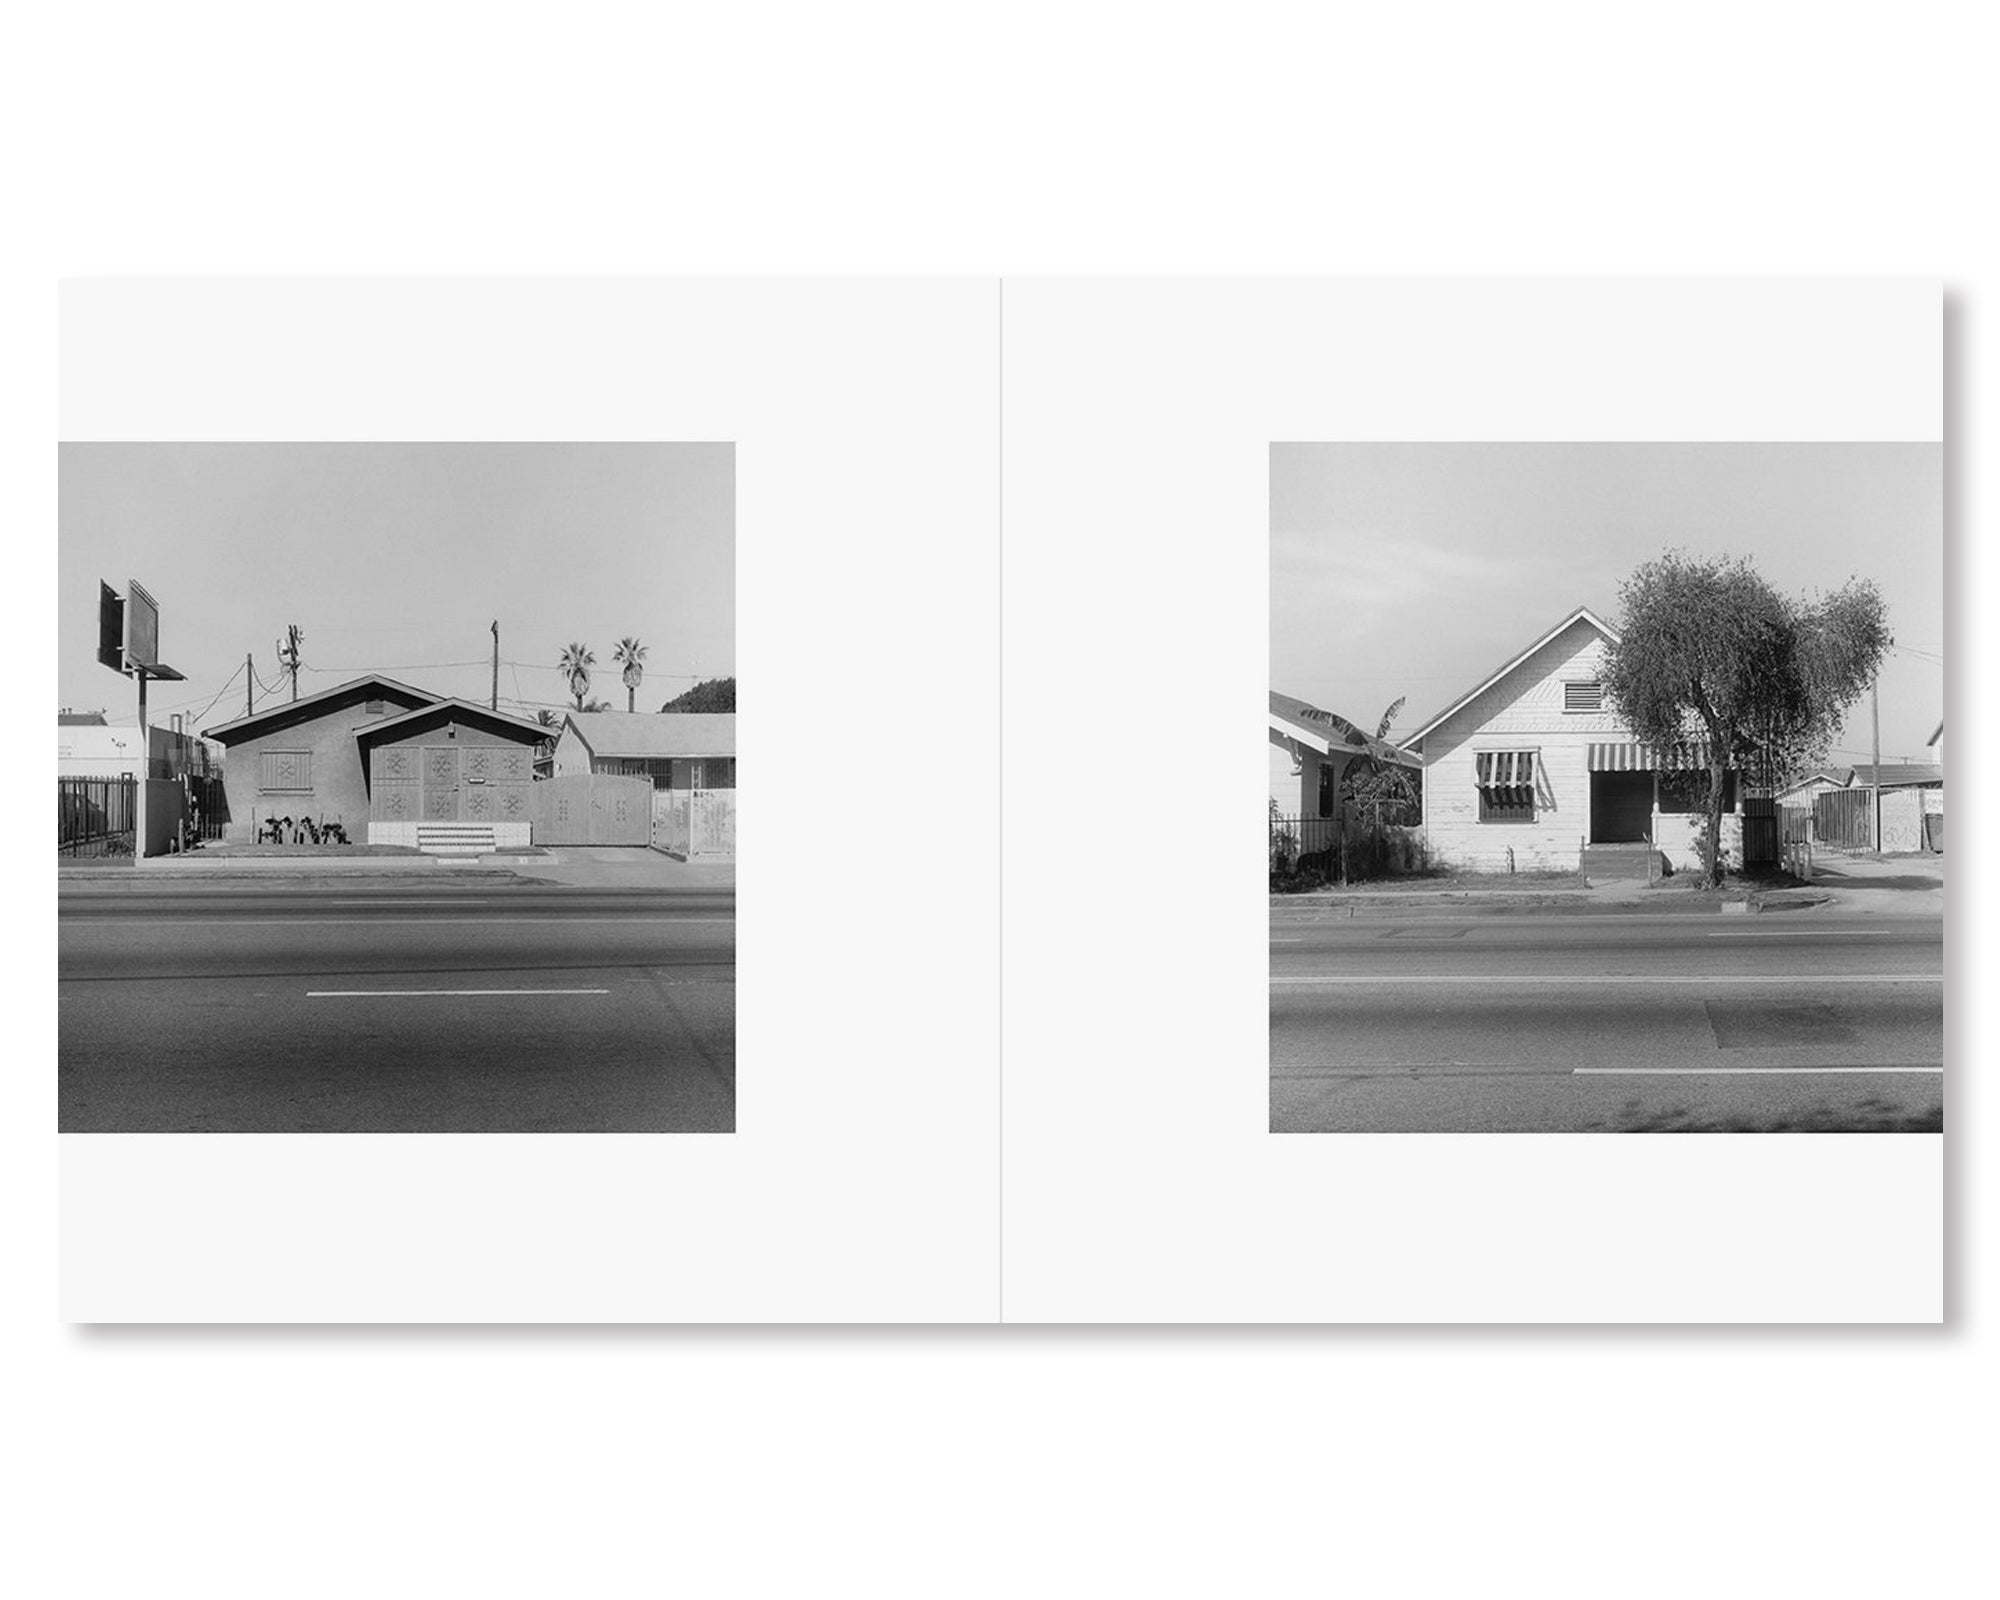 SEVENTY-TWO AND ONE HALF MILES ACROSS LOS ANGELES by Mark Ruwedel